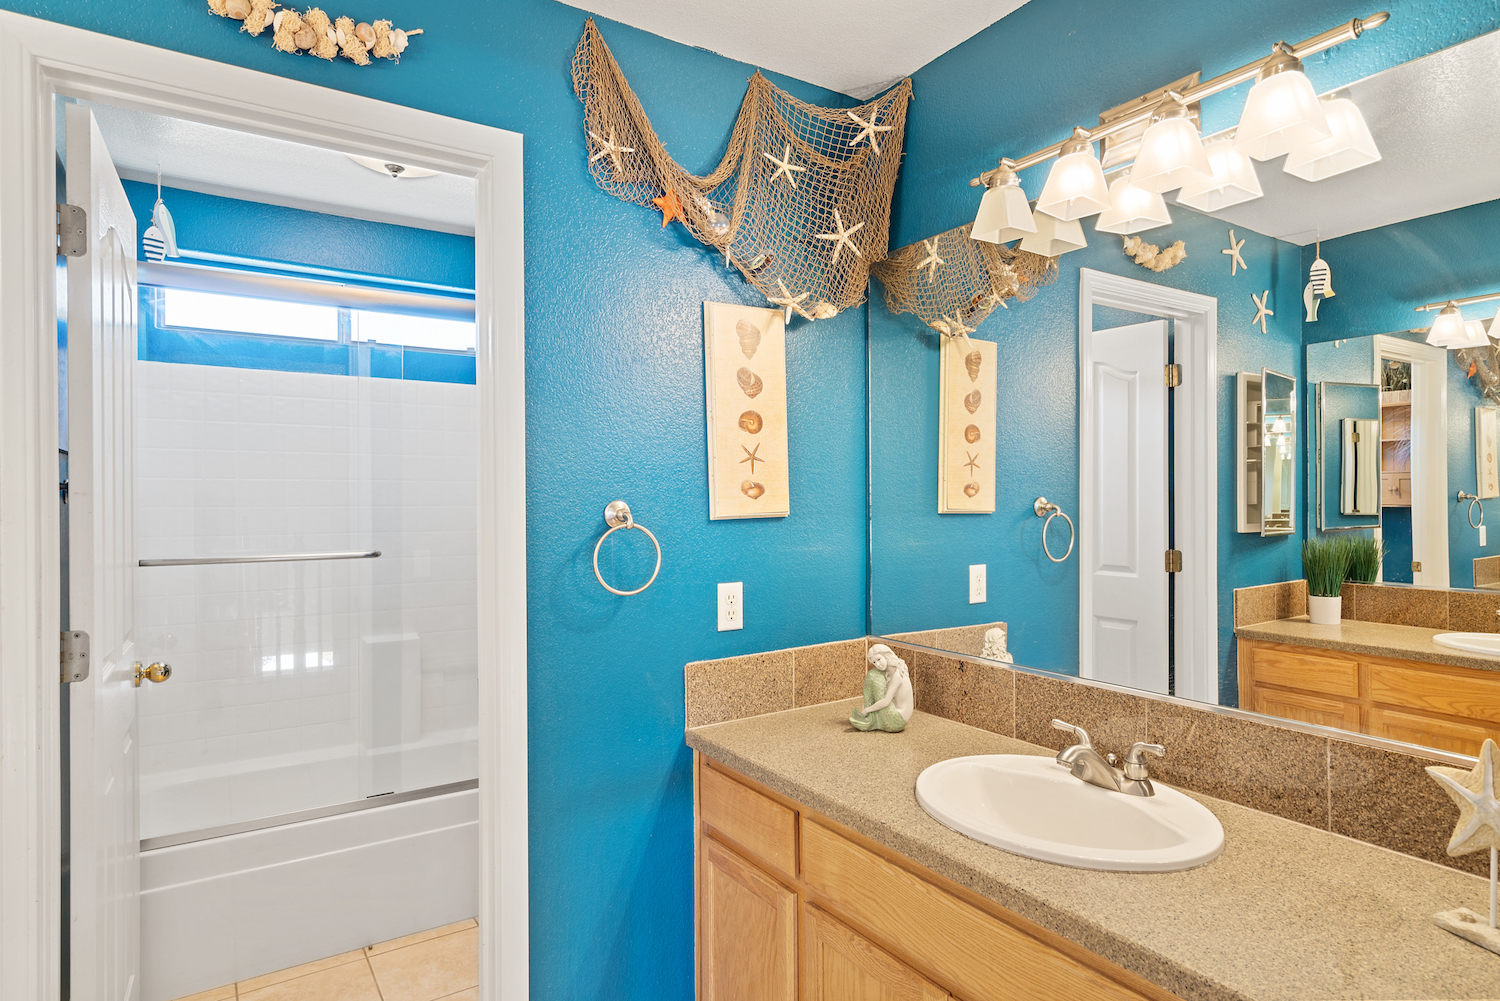 2241 glenview dr - upstairs bathroom